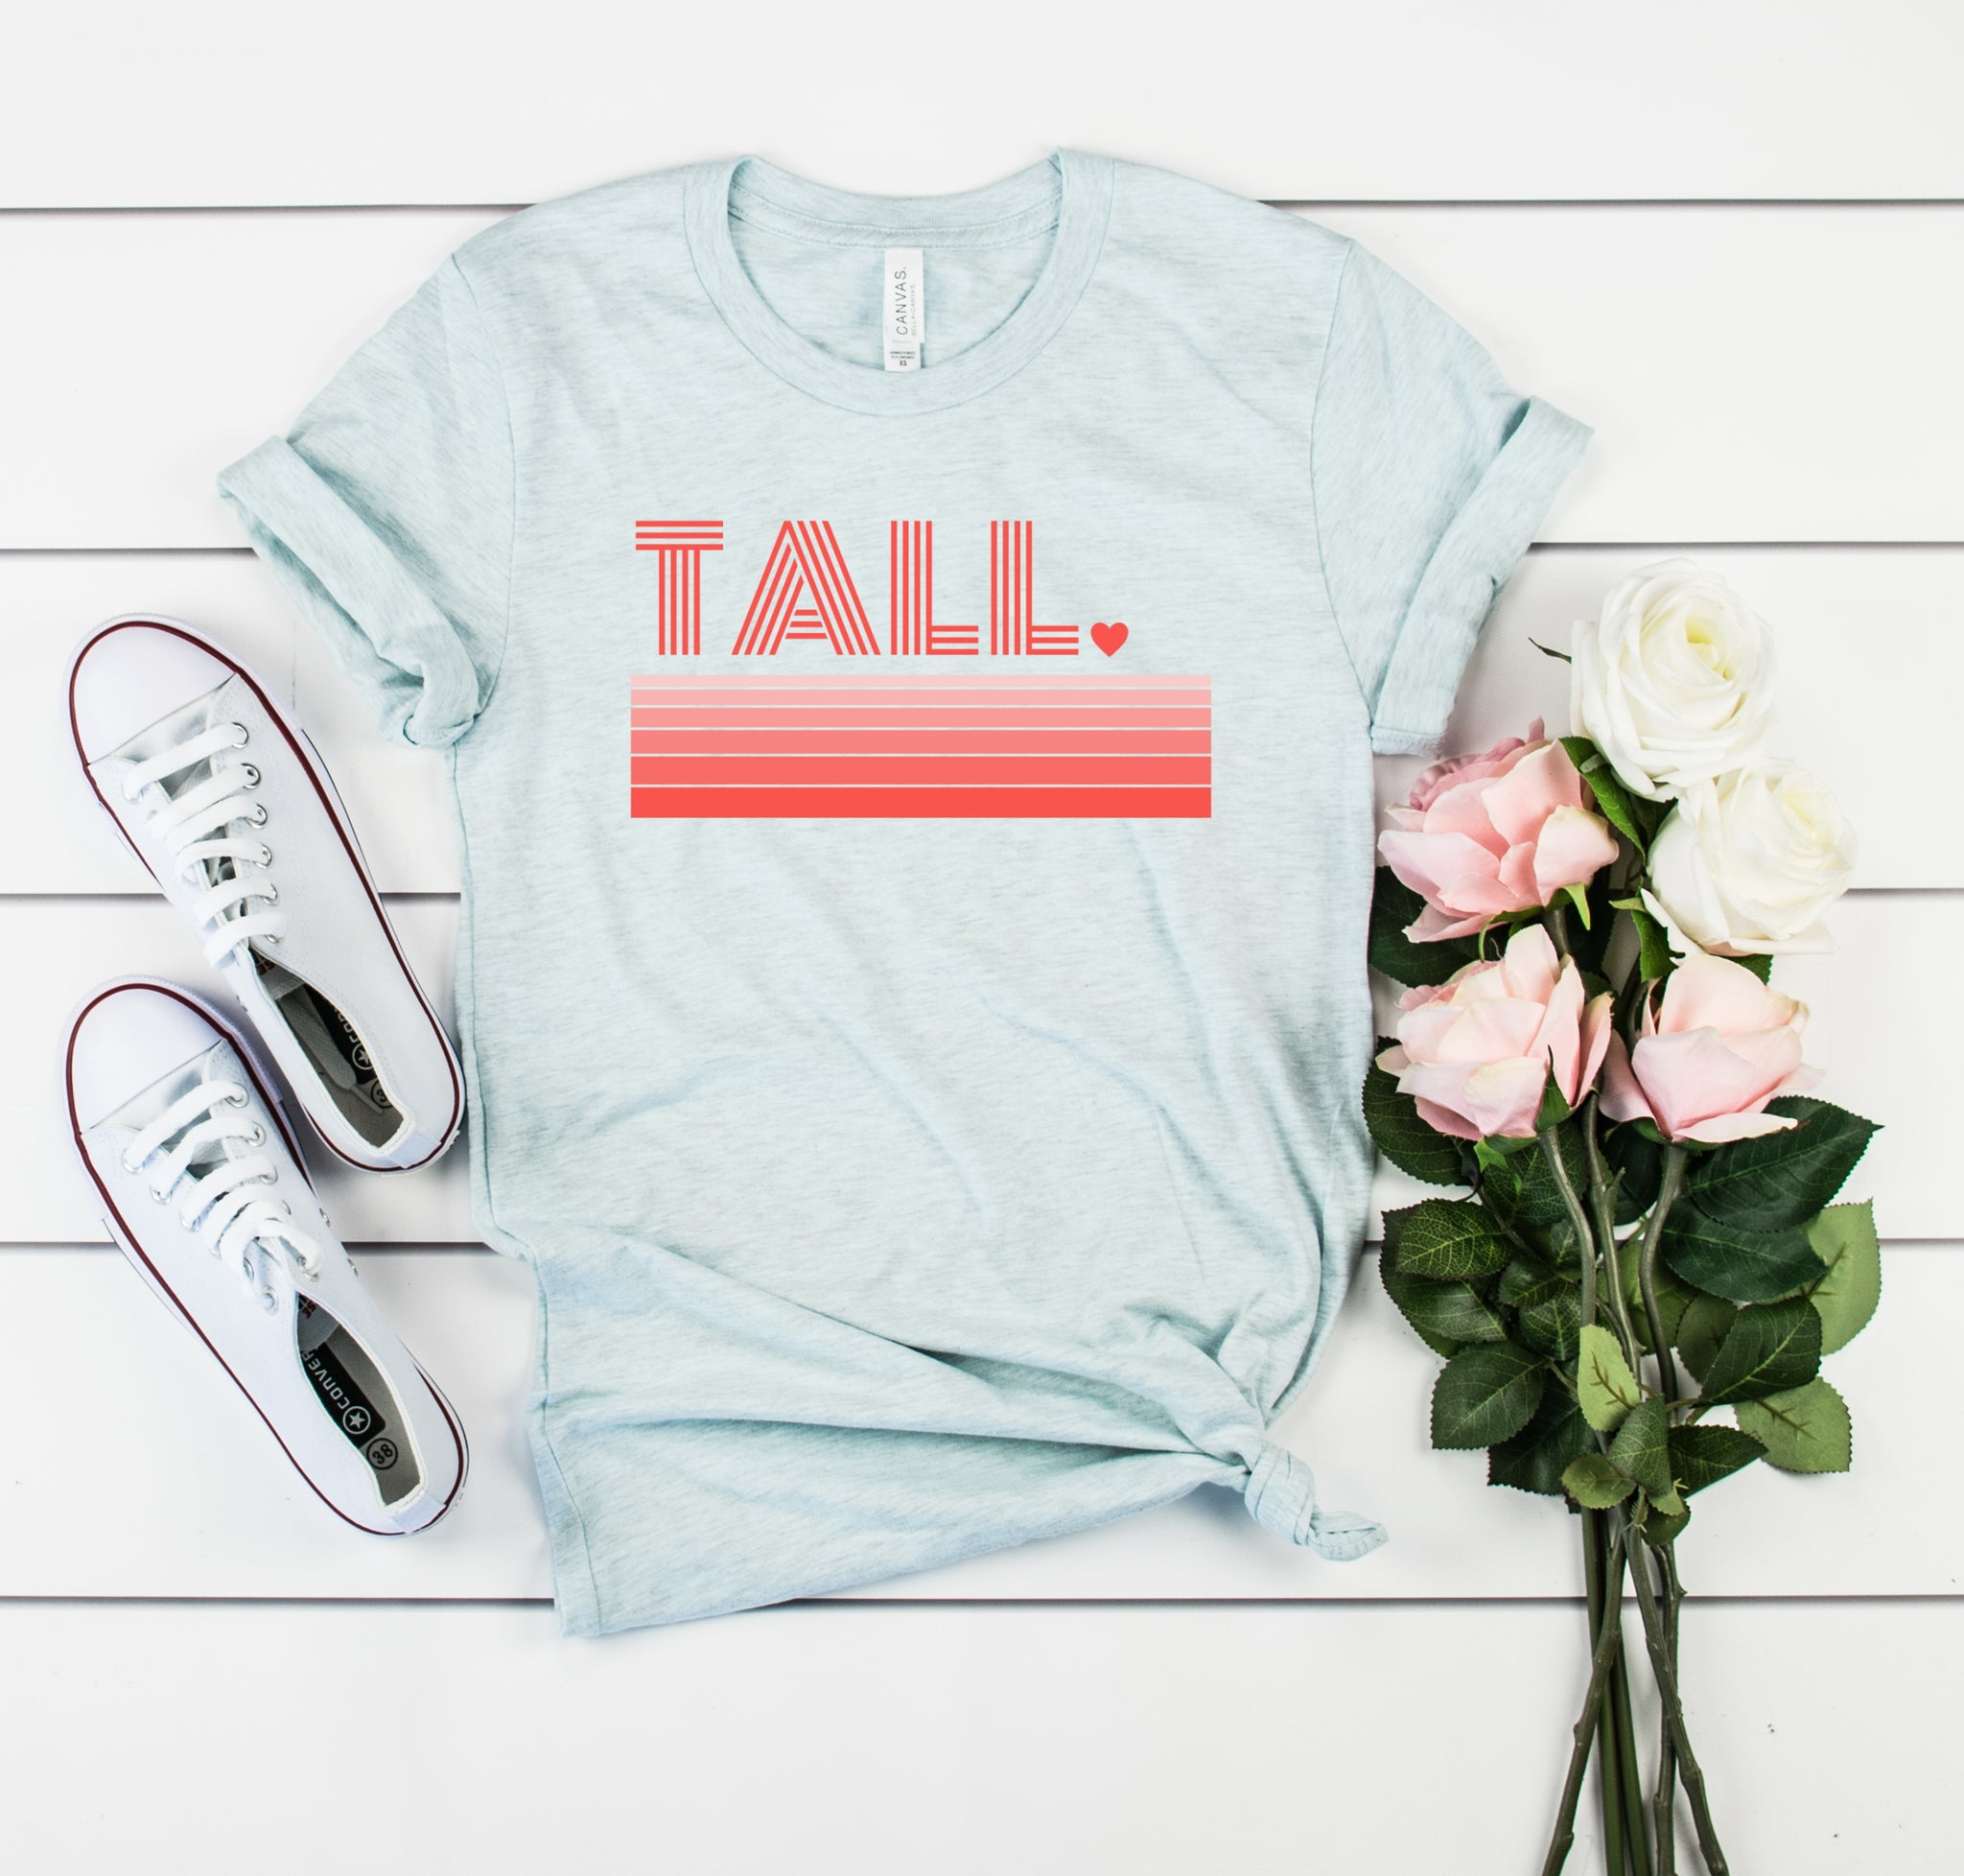 Bella Canvas 3001 Tall Love graphic tee